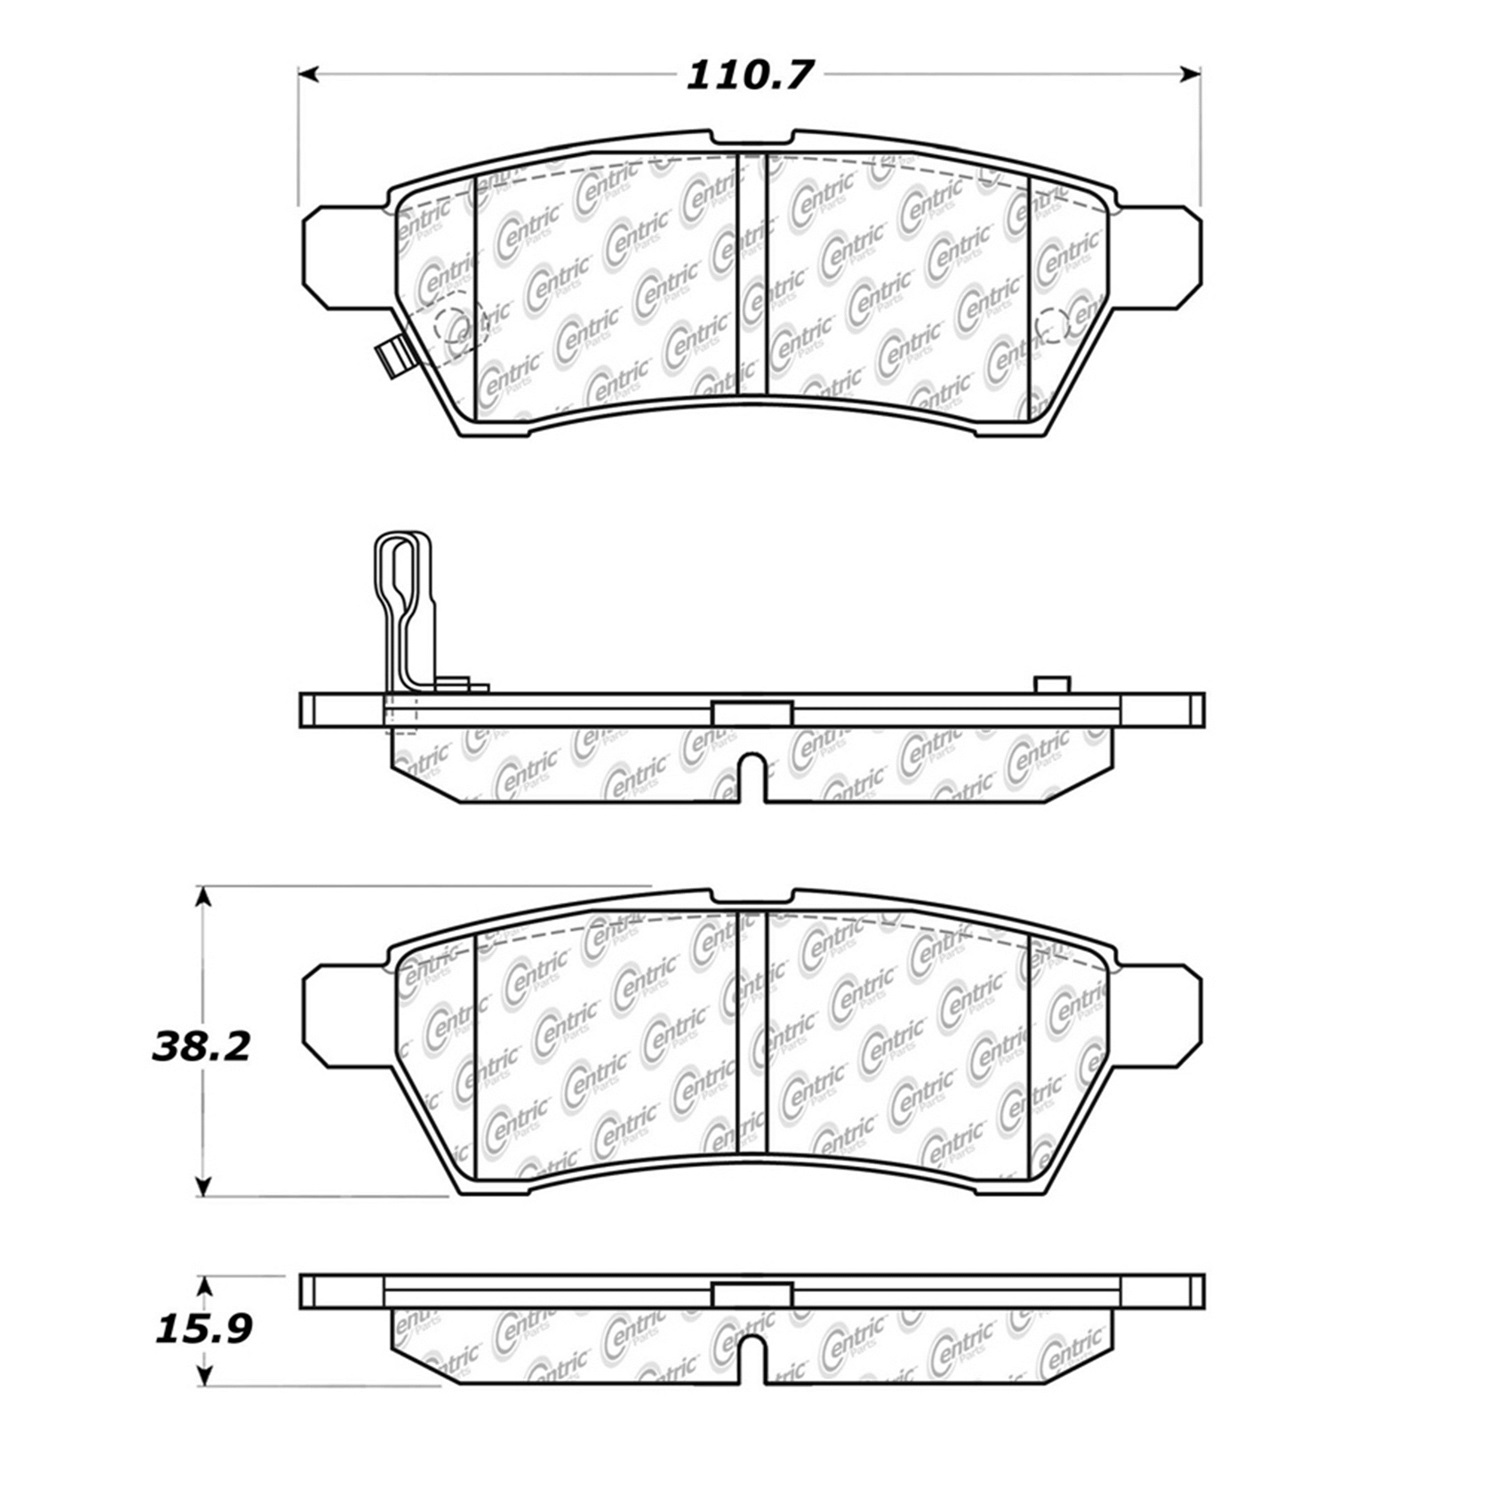 StopTech 105.11000 Disc Brake Pad Fits 05-10 Equator Frontier Xterra